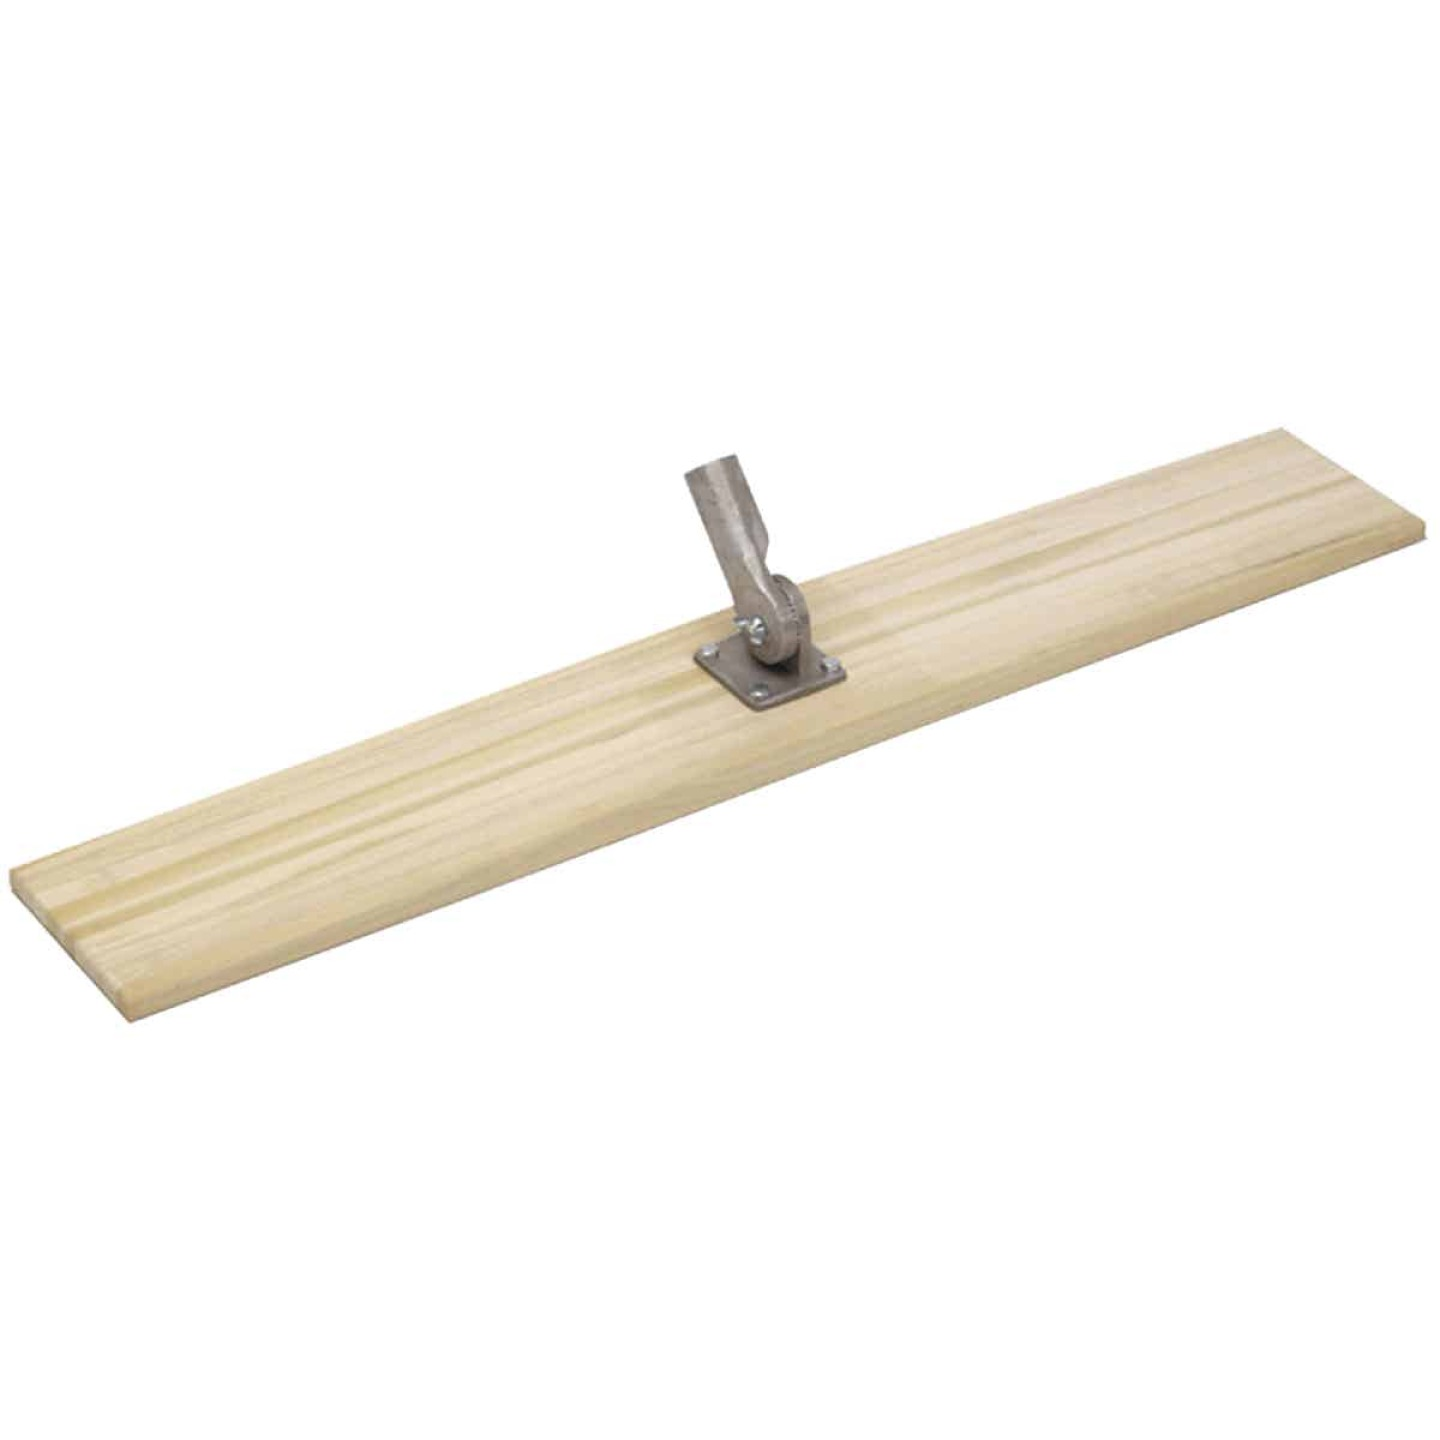 Marshalltown 8 In. x 36 In. Straight End Wood Bull Float Image 1